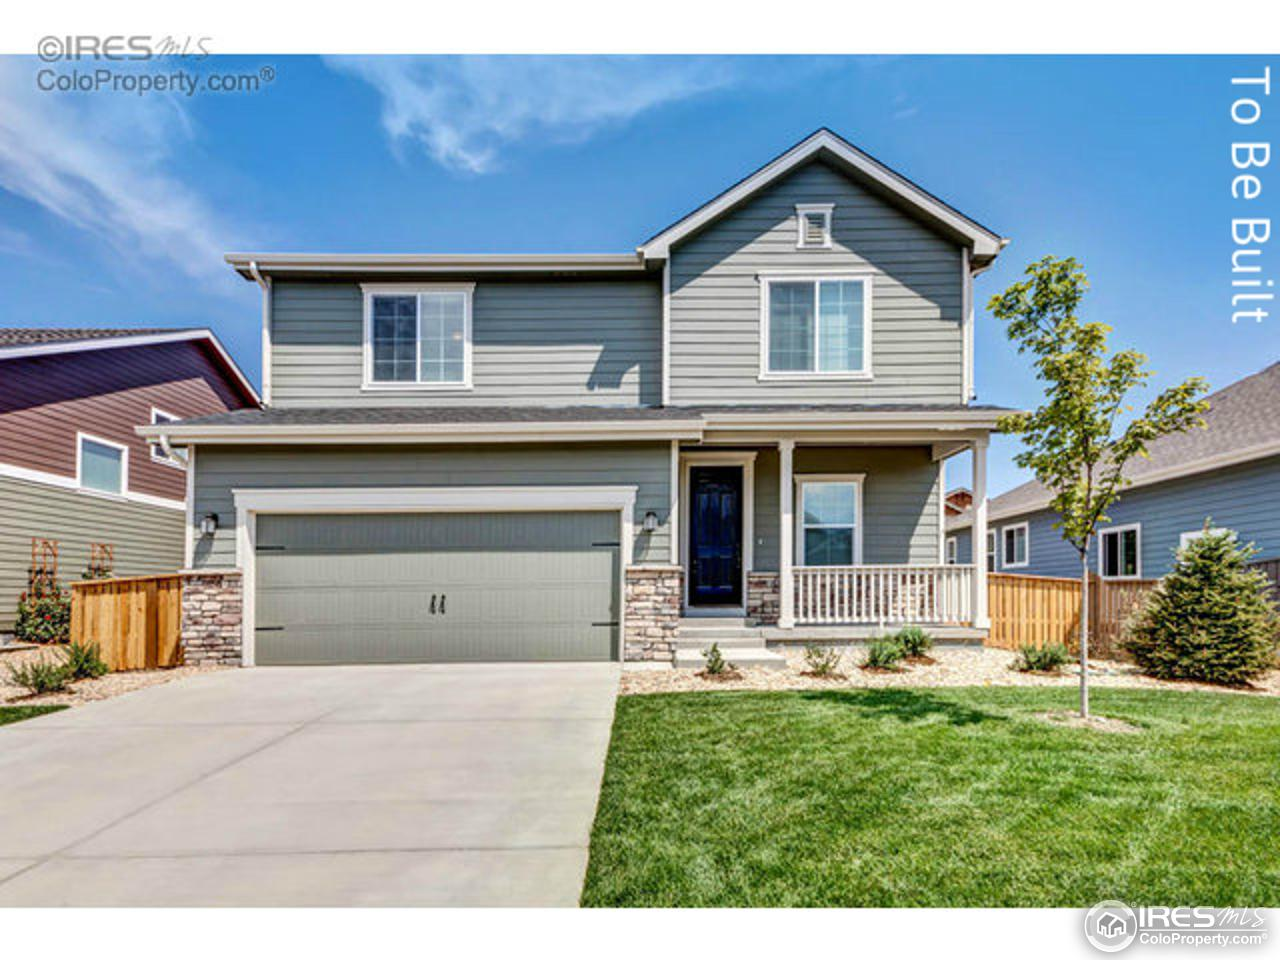 1367 15th Ave, Longmont, CO 80501